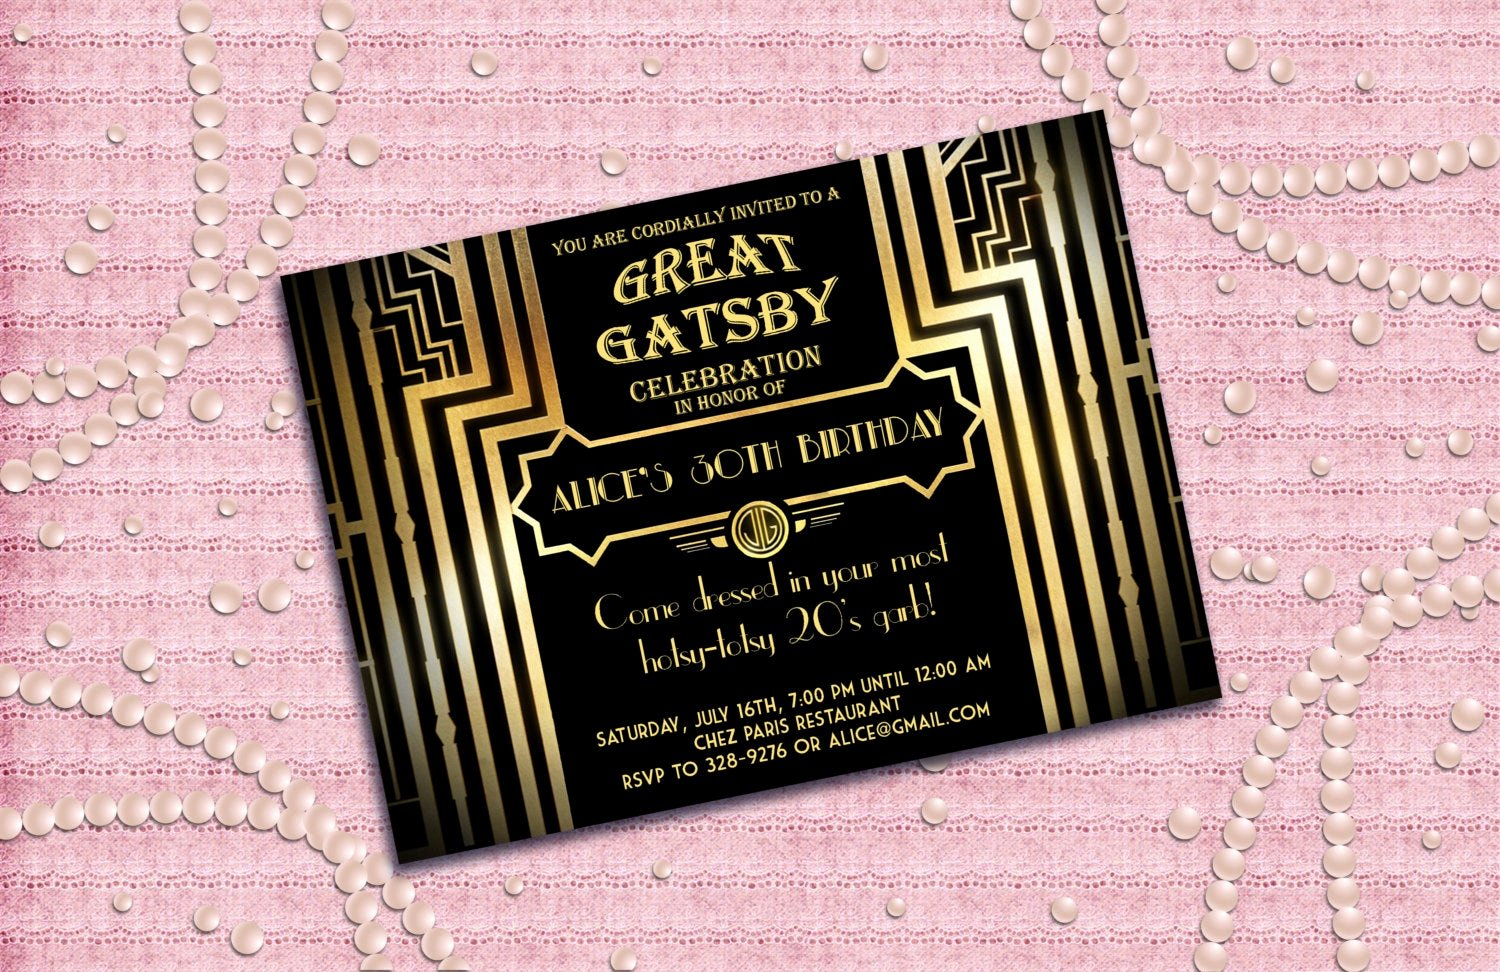 Great Gatsby Party Invitation Templates Lovely Great Gatsby Style Art Deco Birthday Party Invitation by